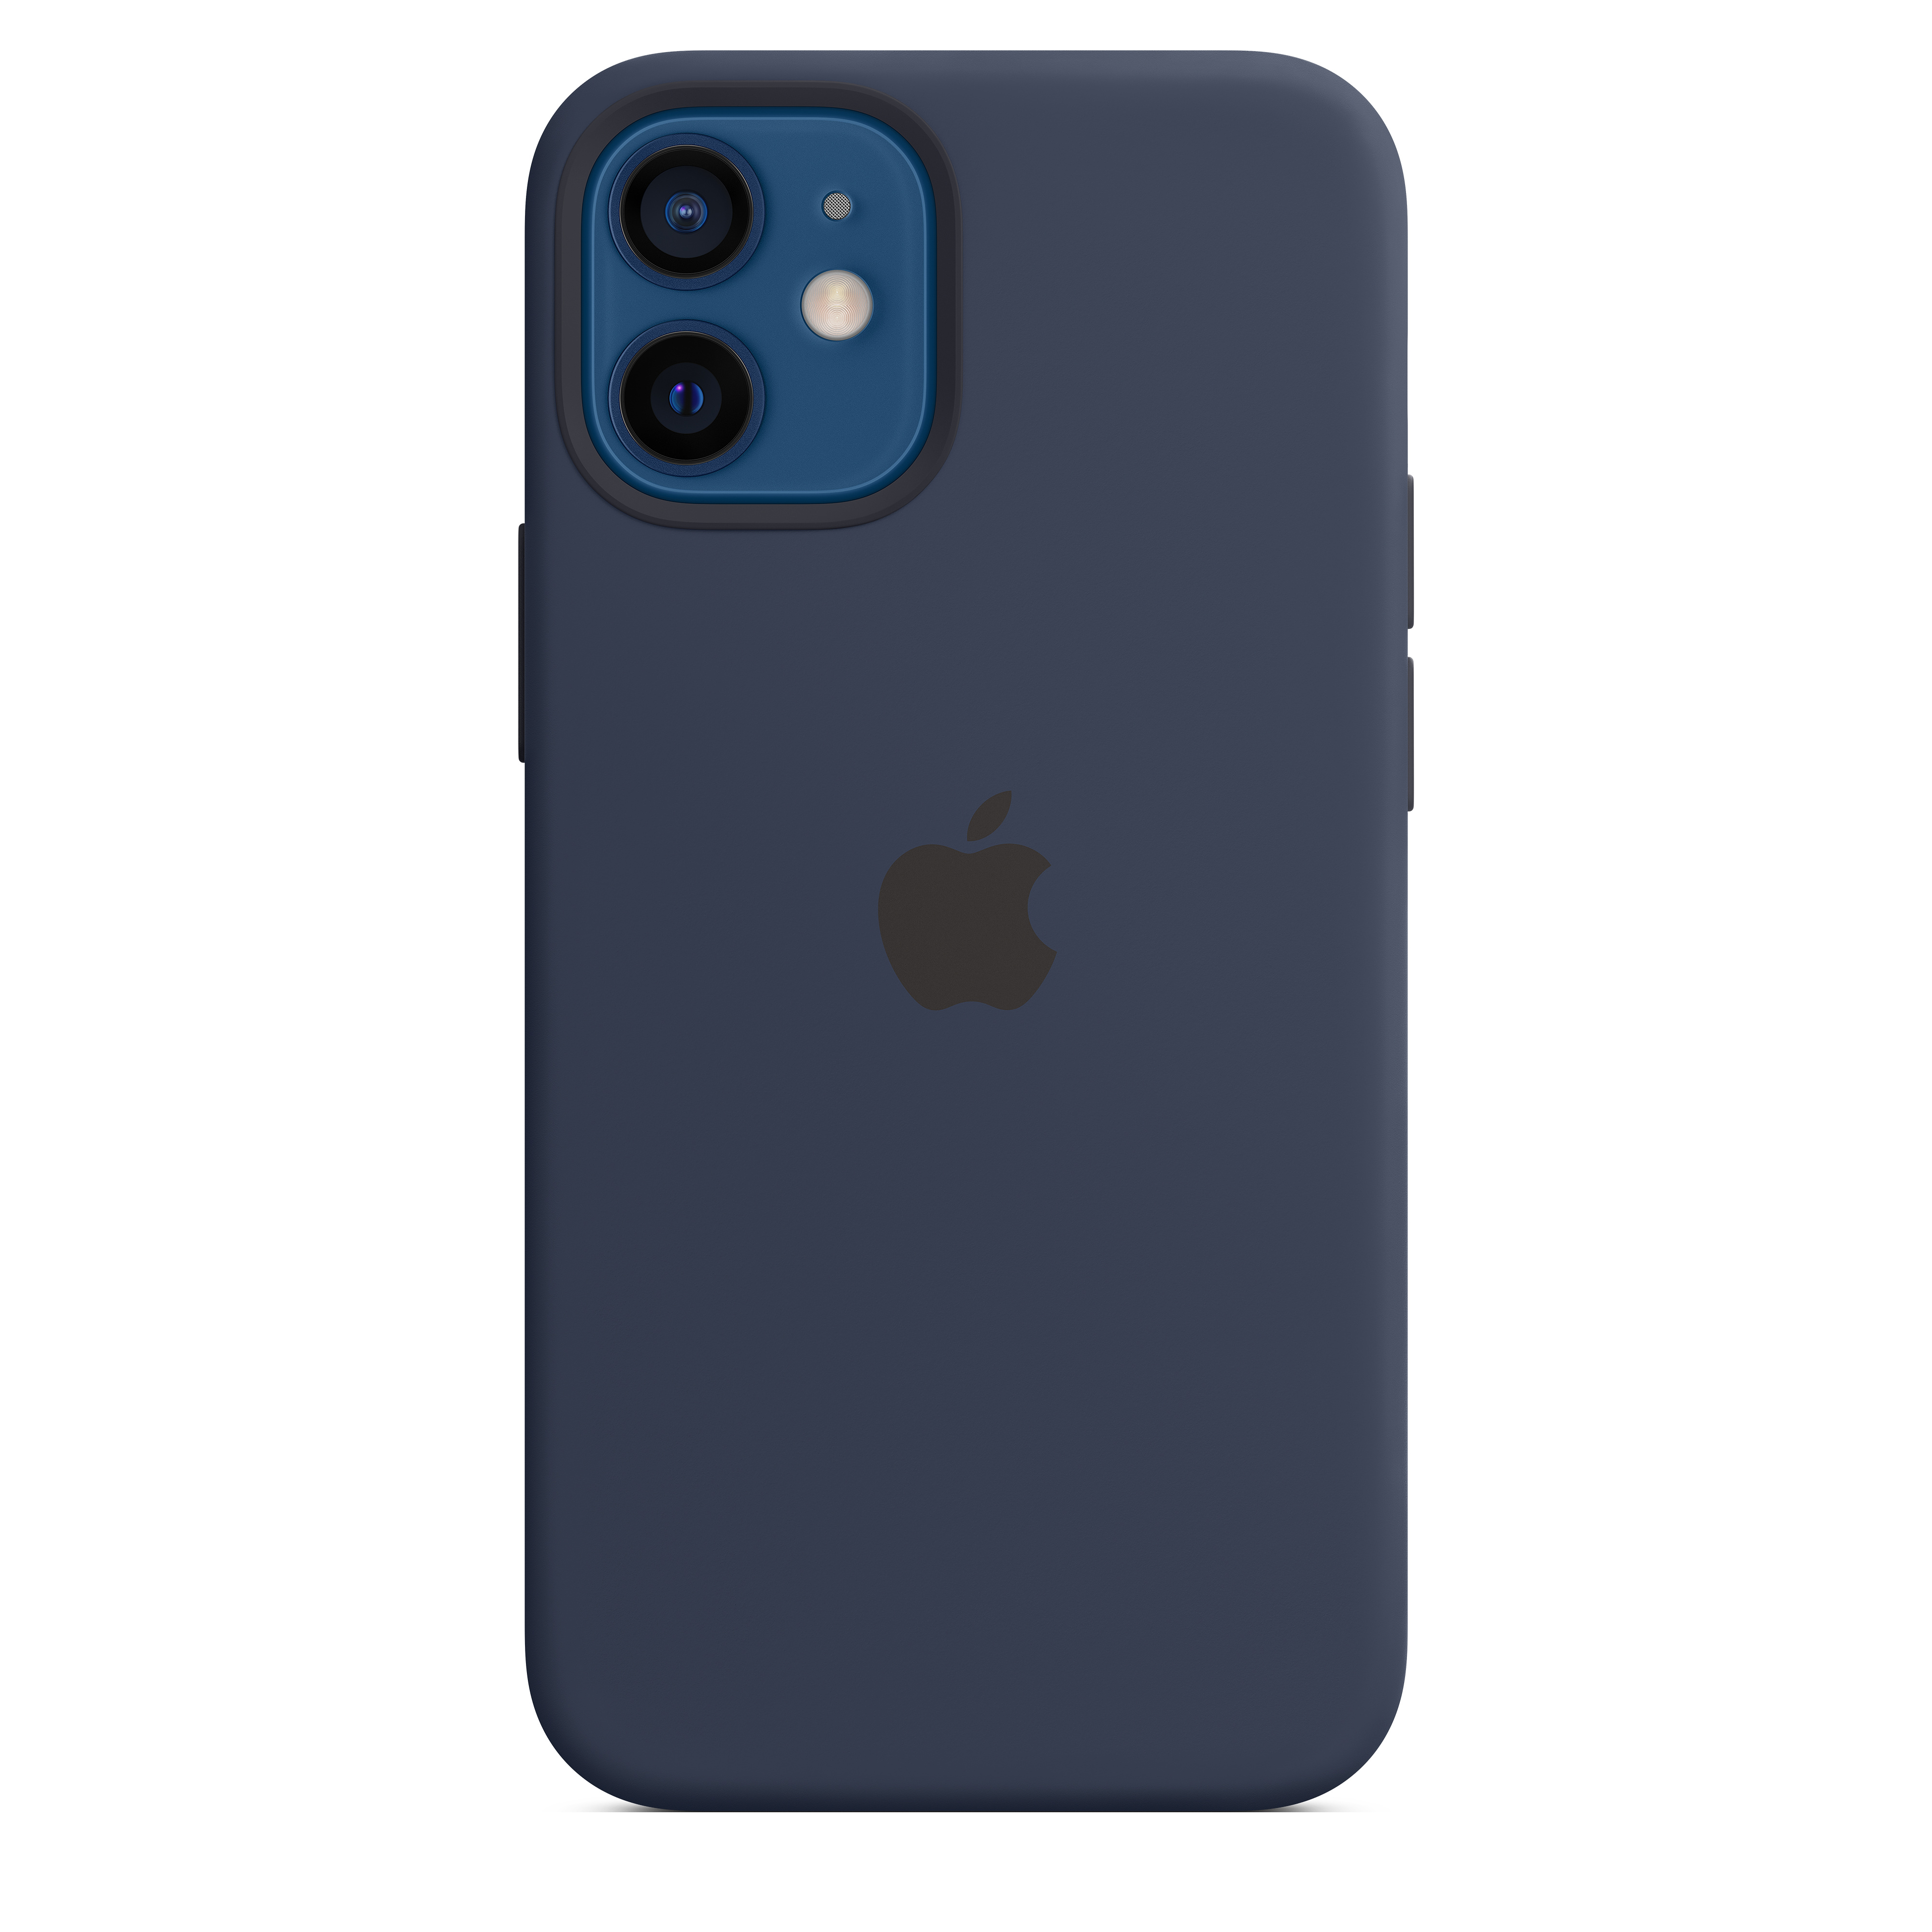 Apple - iPhone 12 mini Silicone Case with MagSafe - Deep Navy Mhku3zm/a